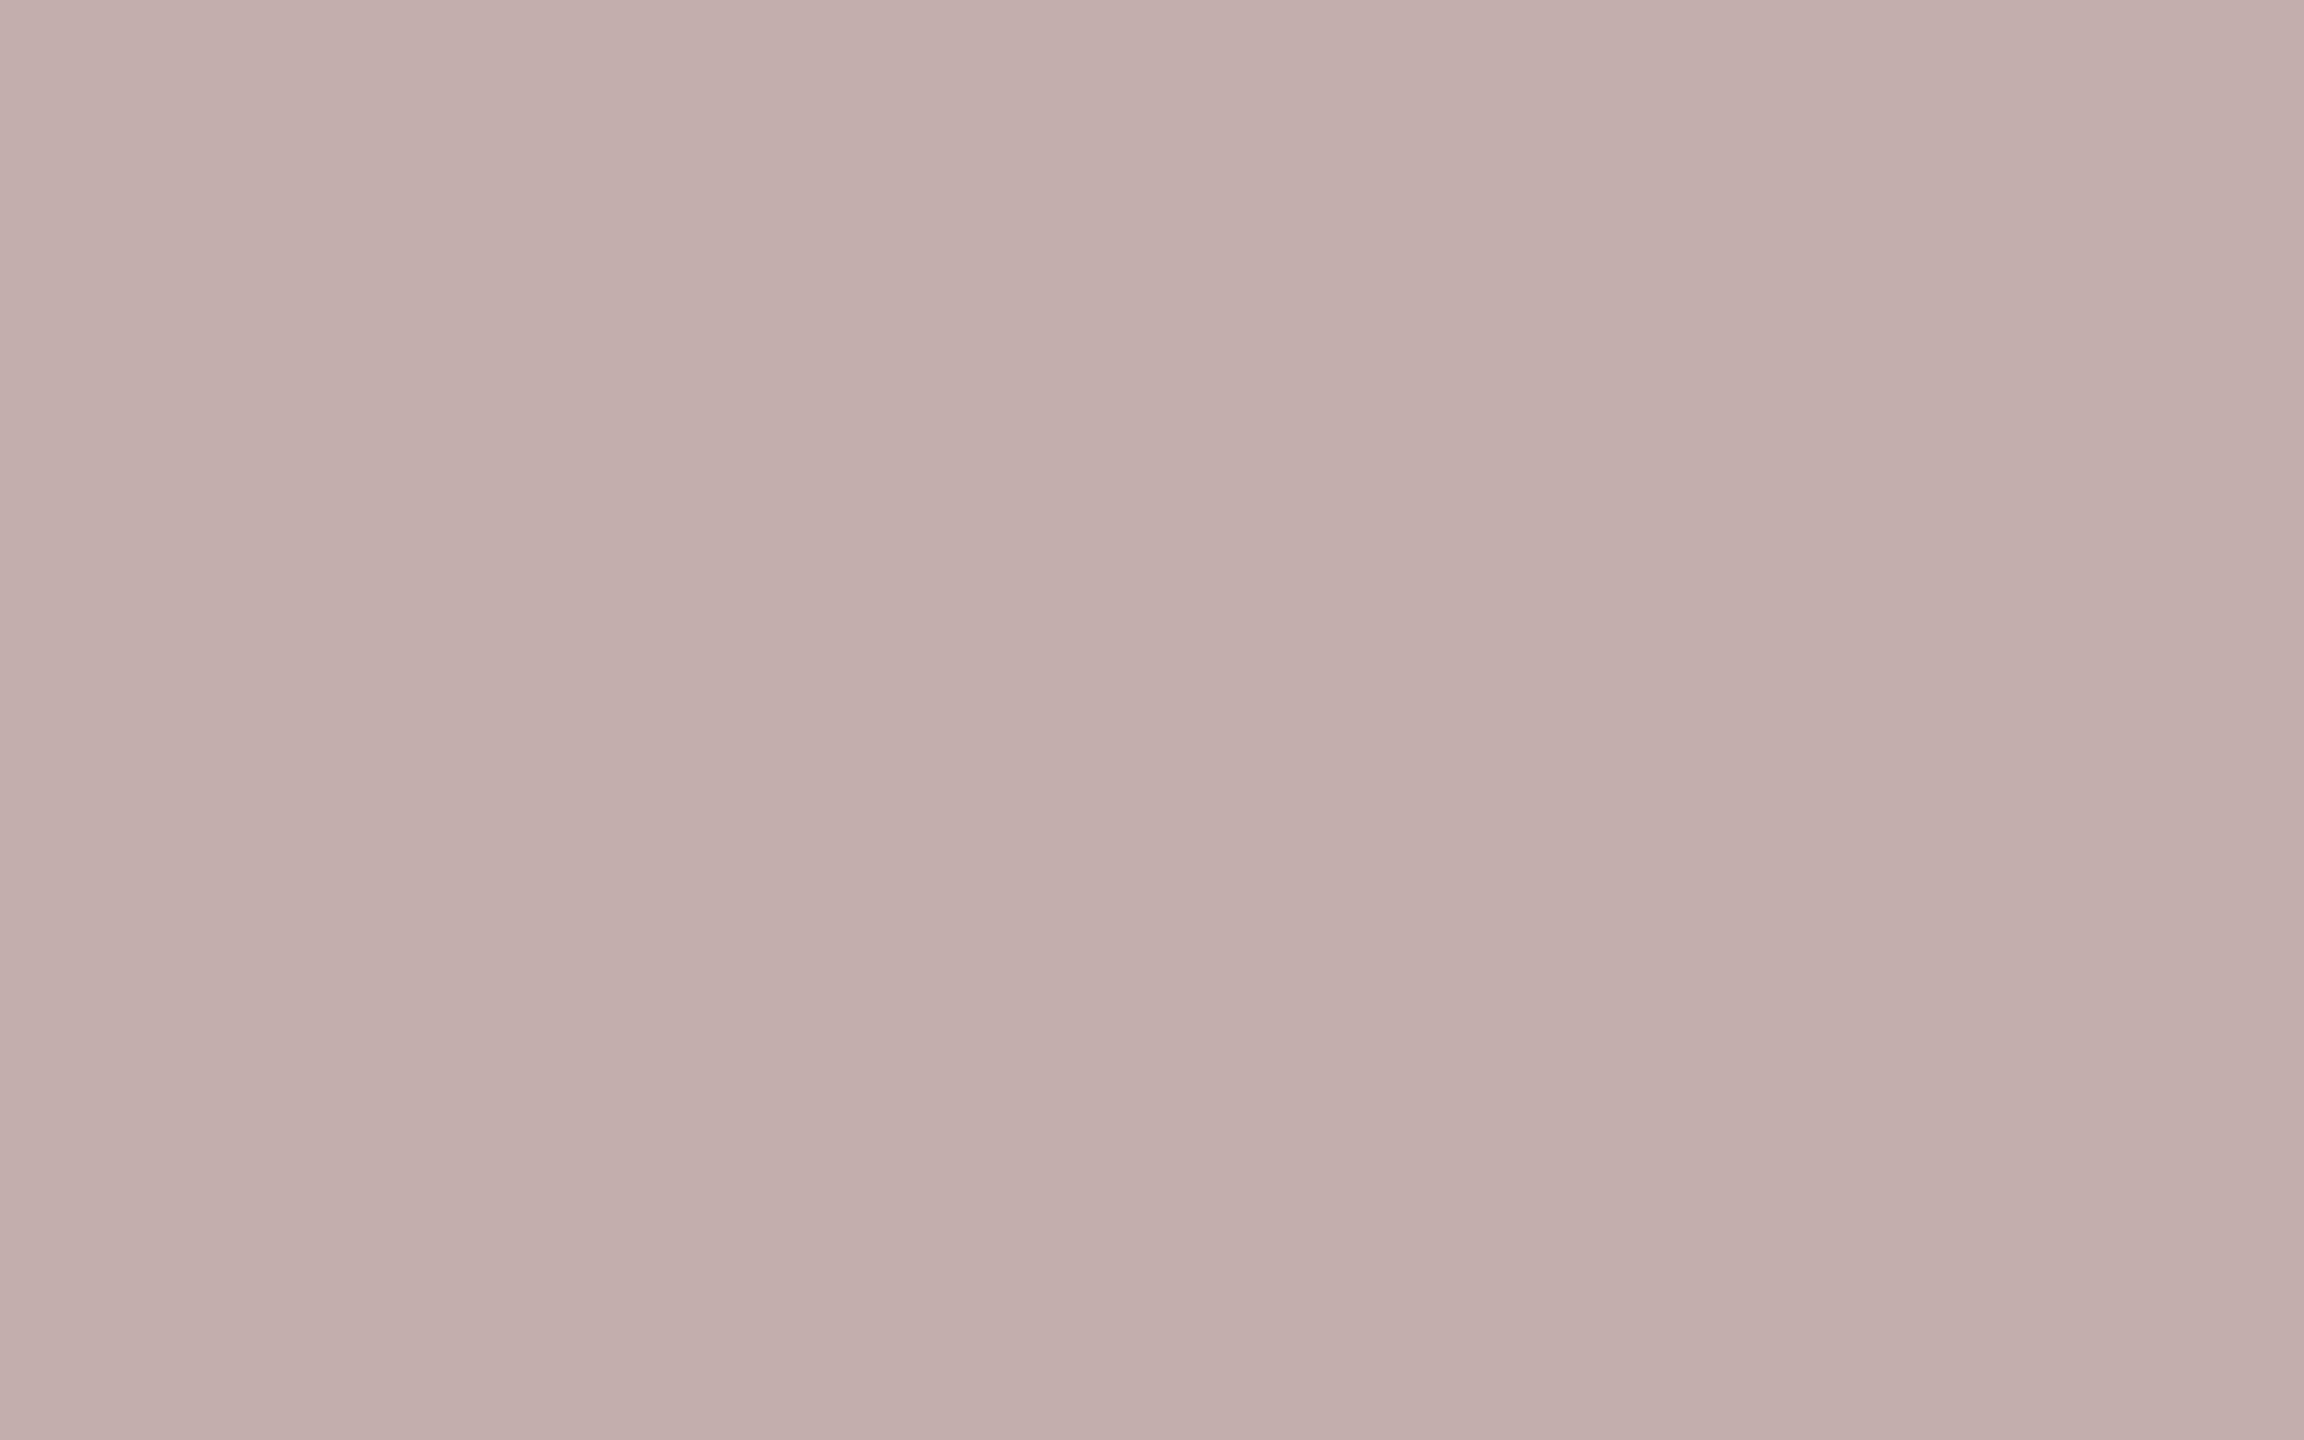 2304x1440 Silver Pink Solid Color Background